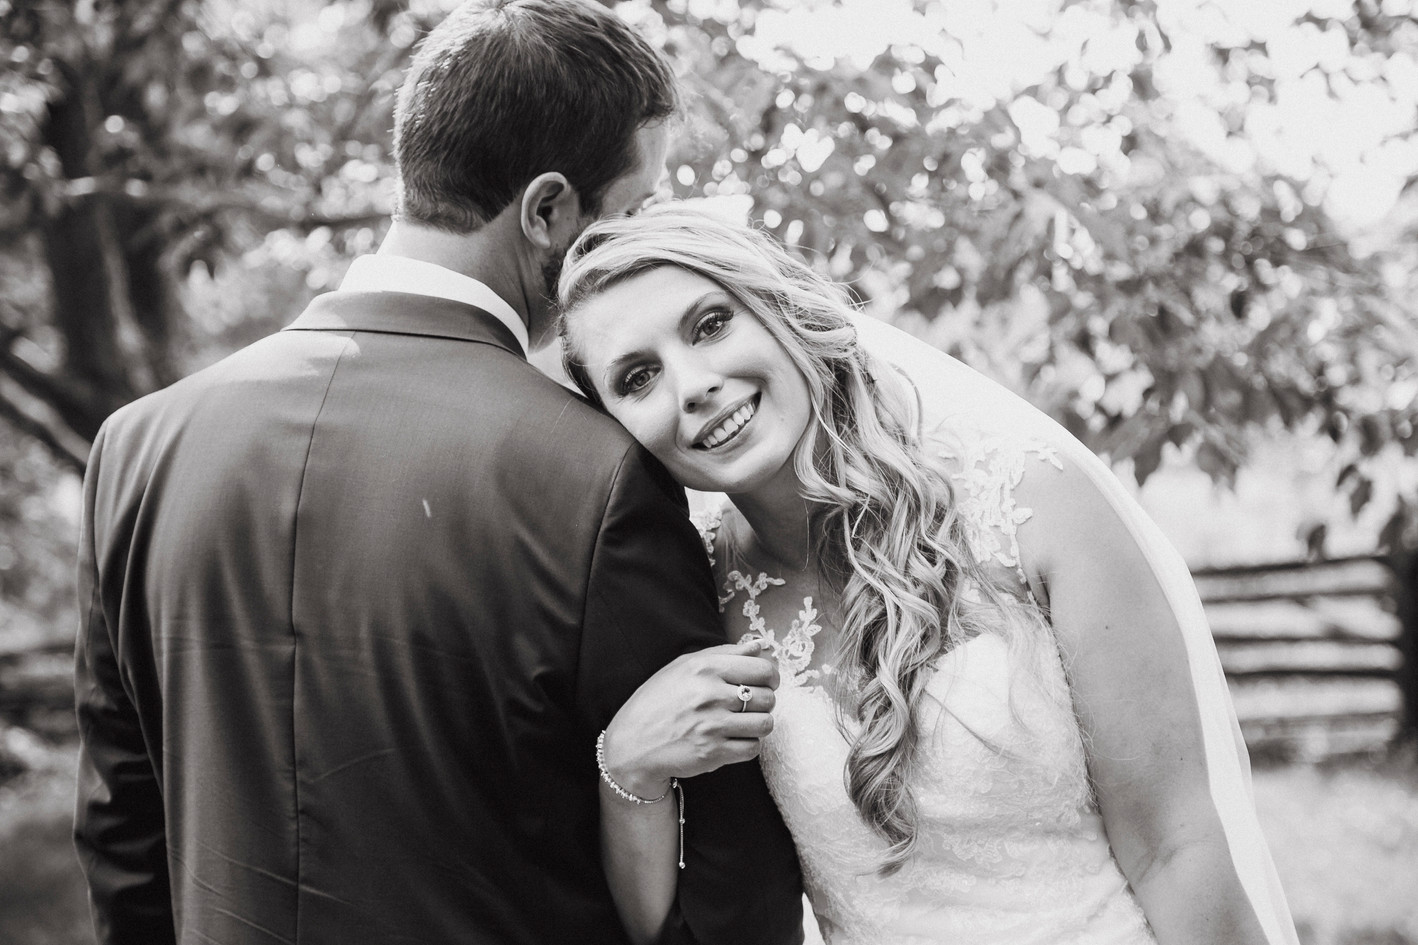 Bride smiling and holding grooms arm posing for wedding photo.